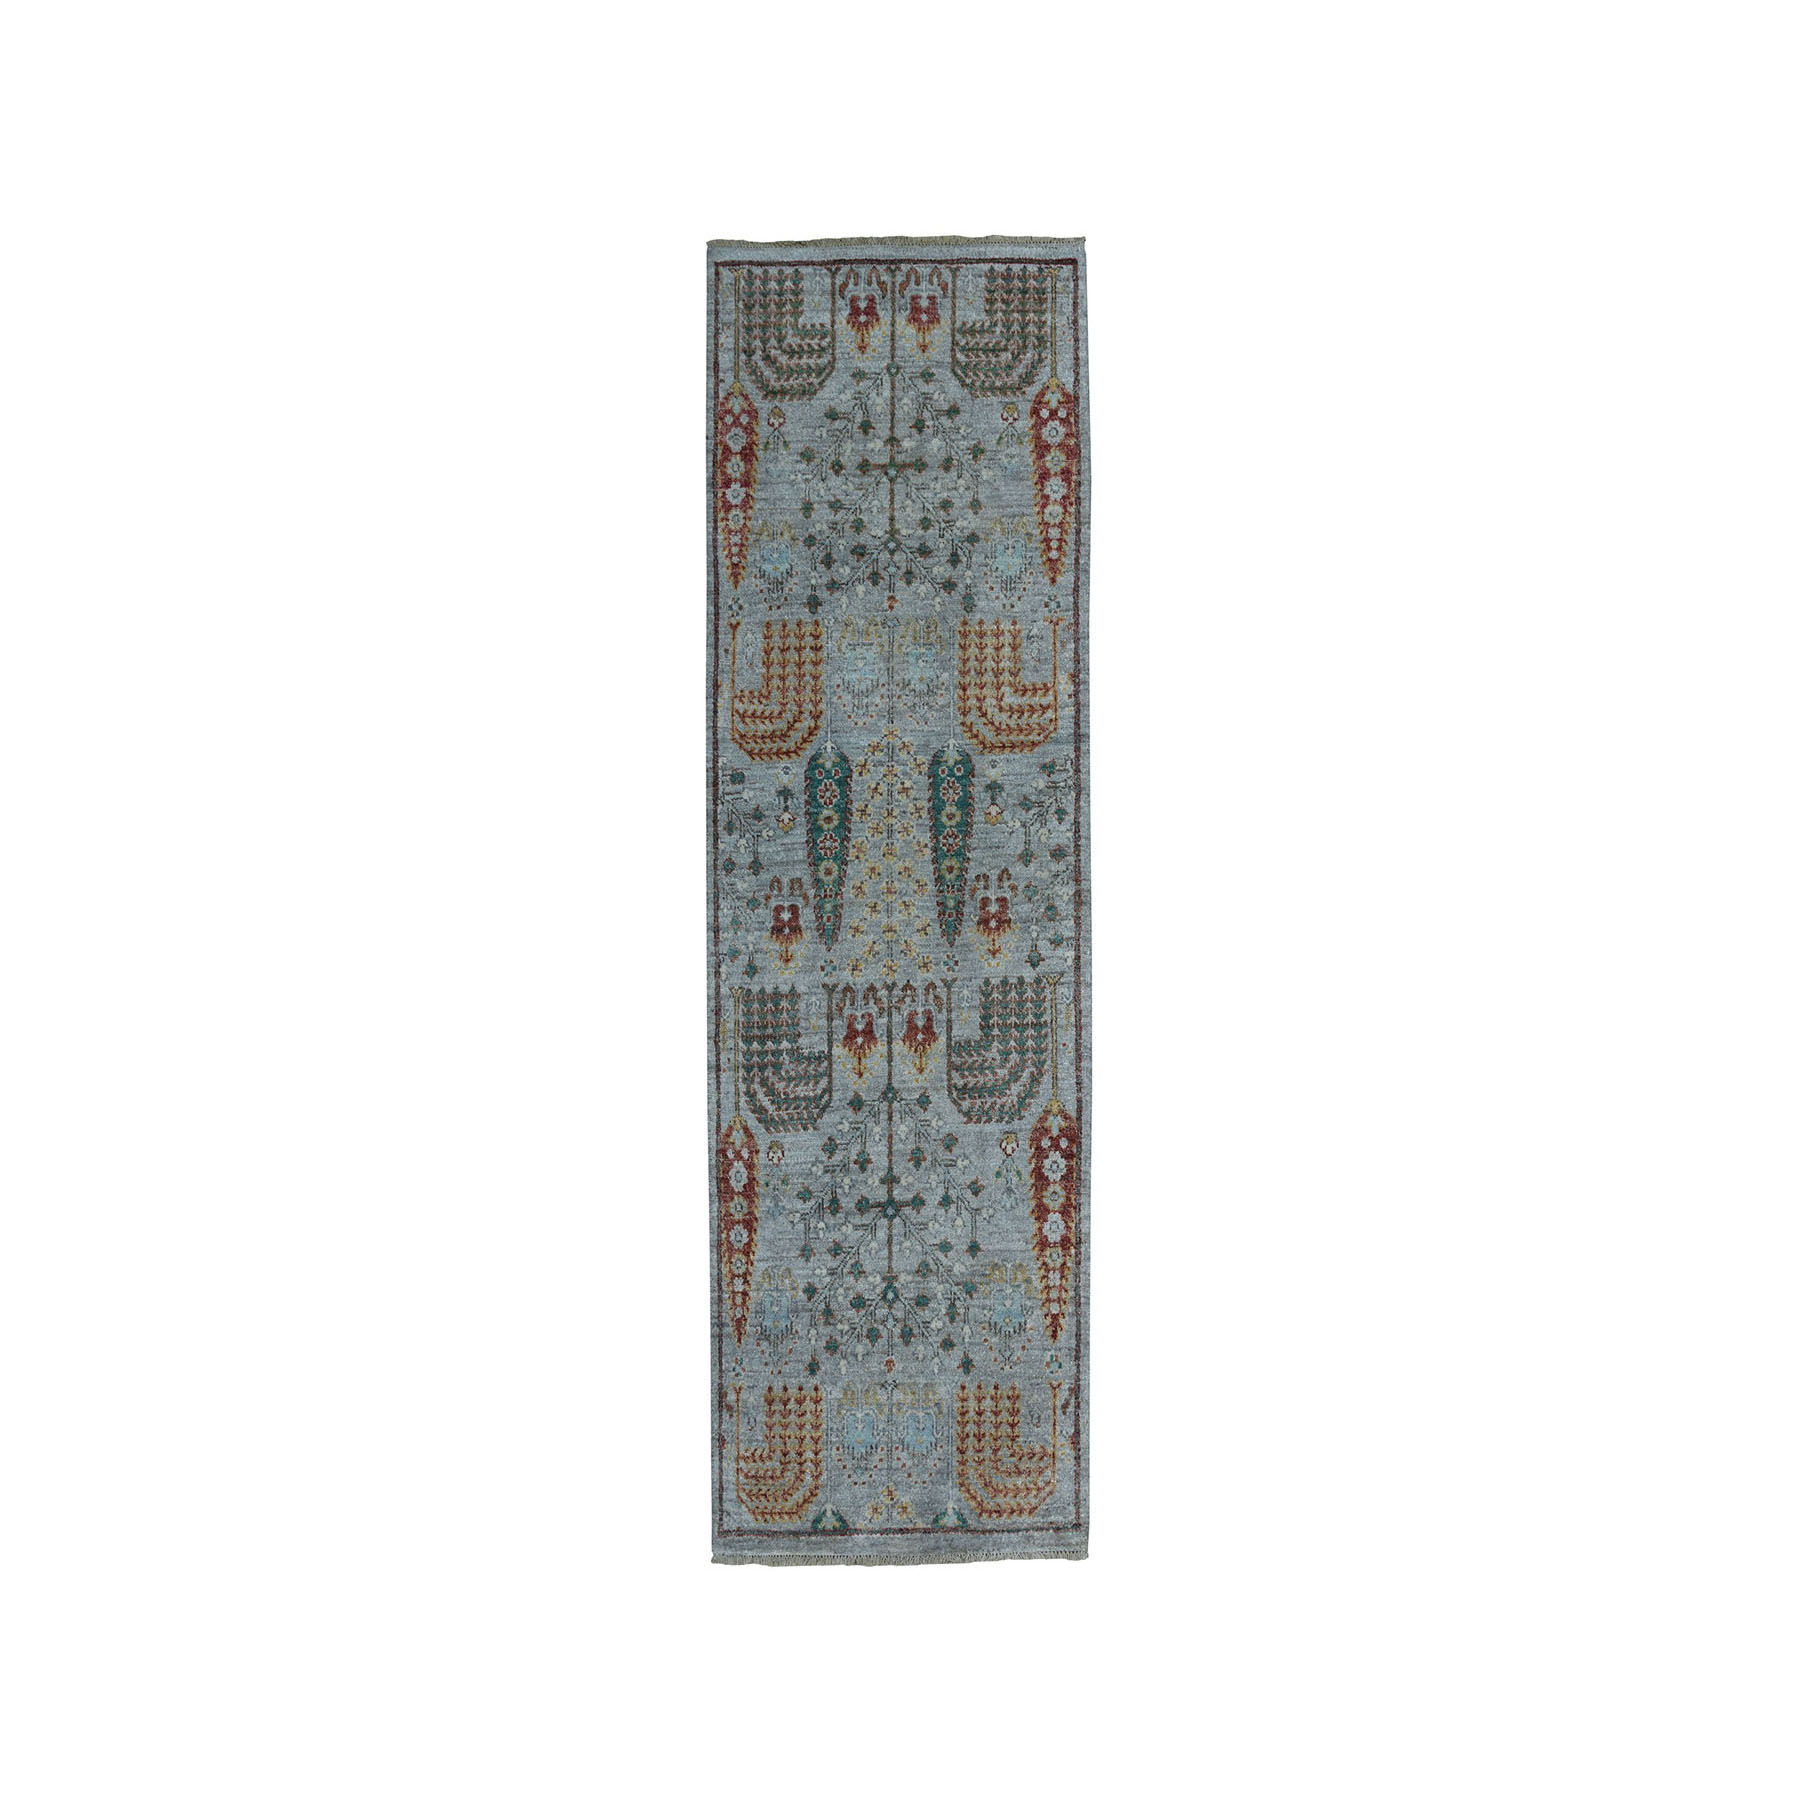 "2'7""X6'1"" Gray Peshawar Willow And Cypress Tree Design Hand-Knotted Oriental Runner Rug moae0e09"